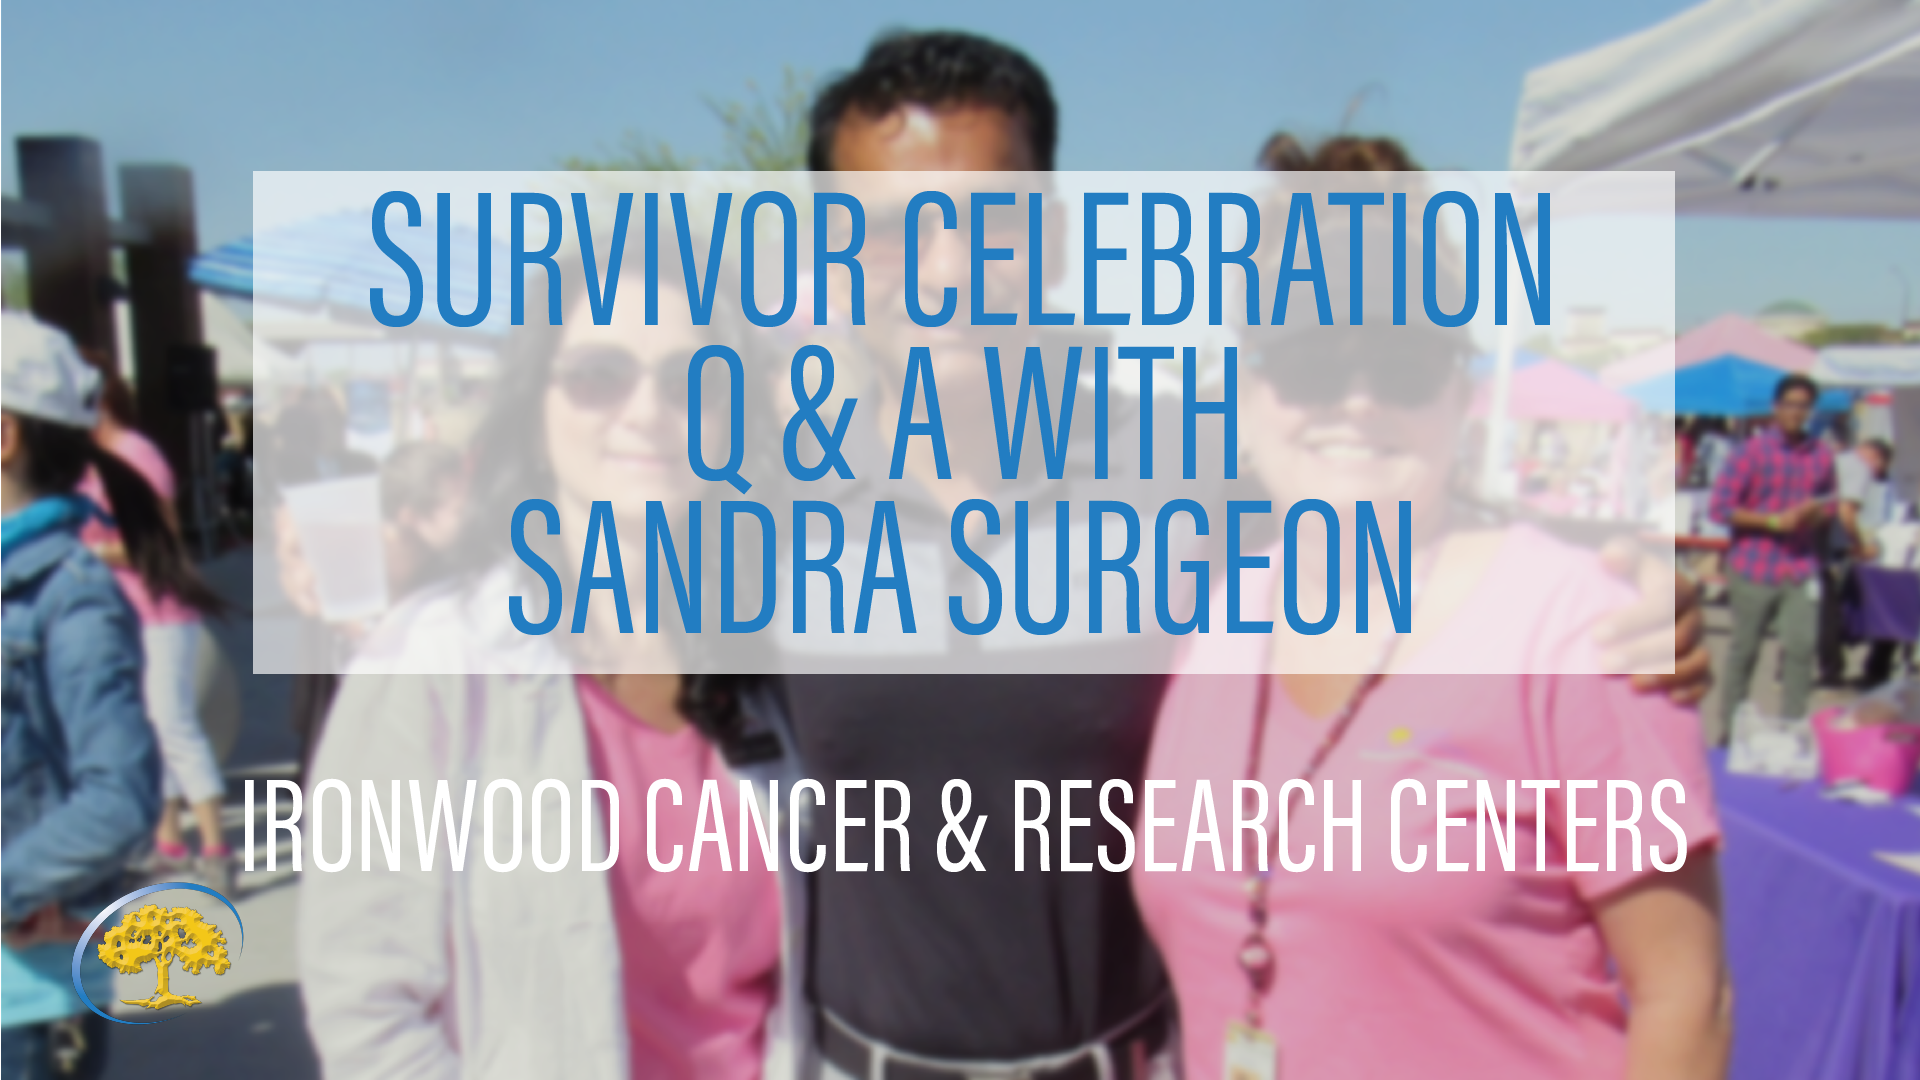 Survivor Celebration Q & A with Sandra Surgeon Ironwood Cancer & Research Centers